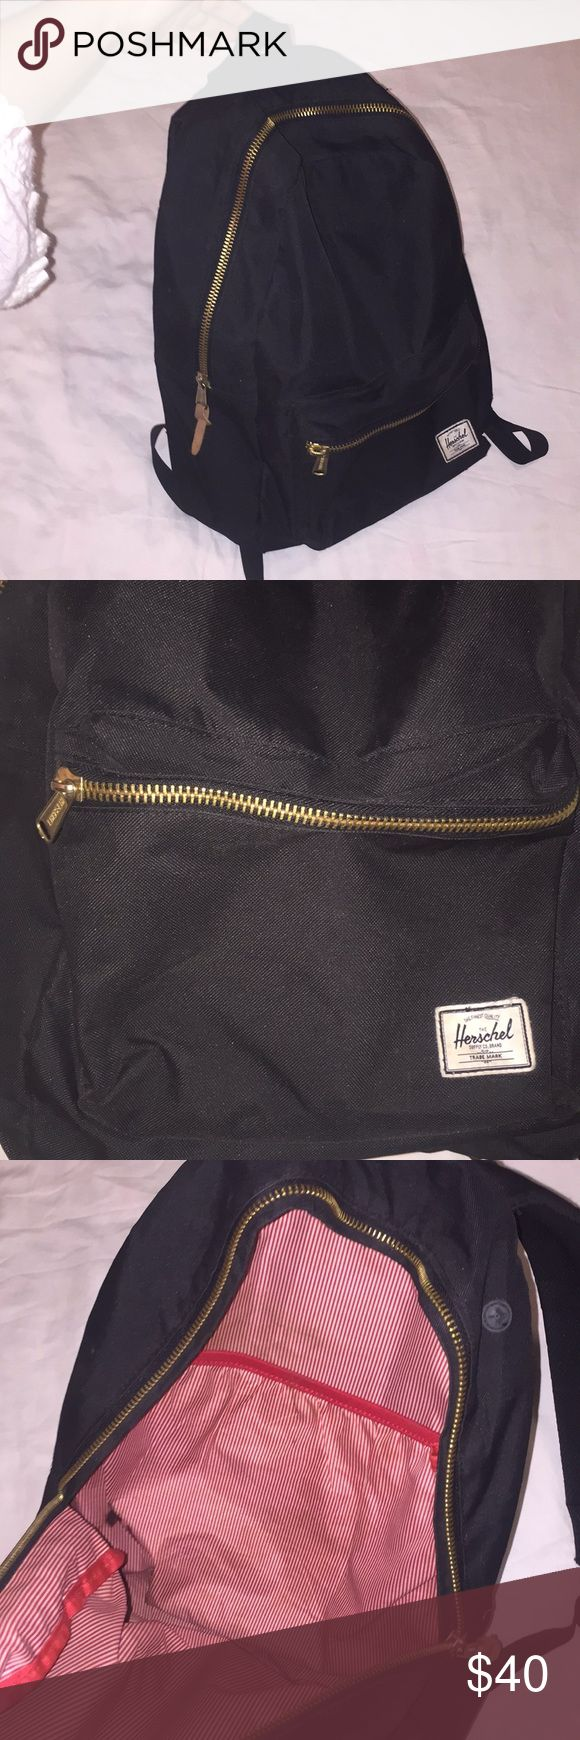 Black and gold backpack Light weight and comfy to wear. In really good condition ! Herschel Supply Company Bags Backpacks